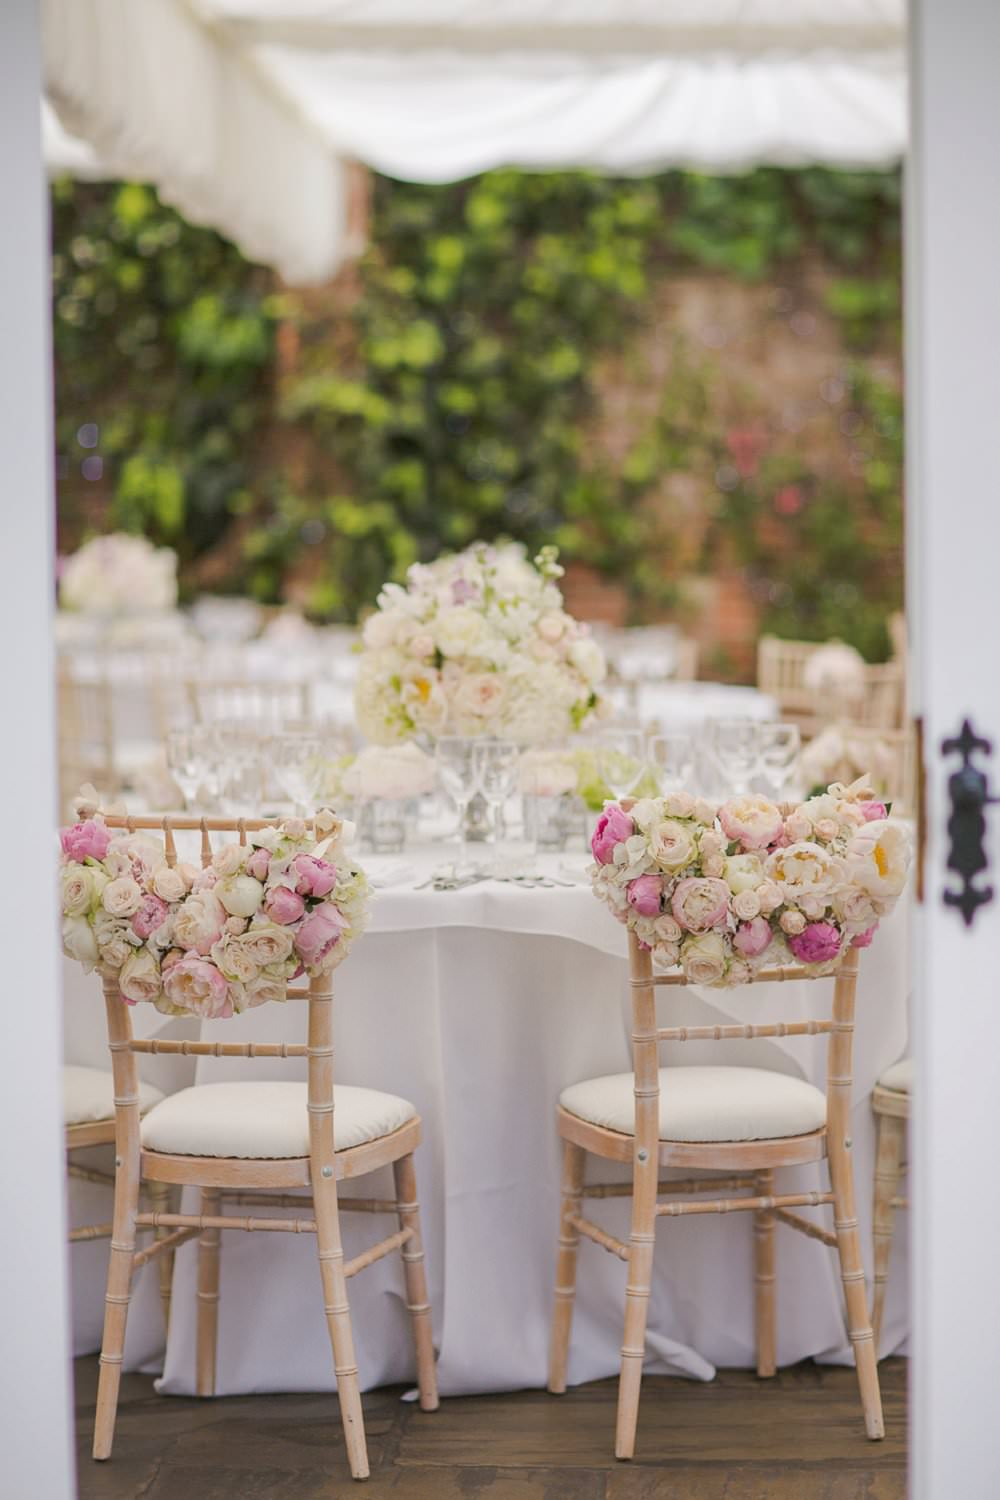 top-table-bride-groom-chairs-floral-garland